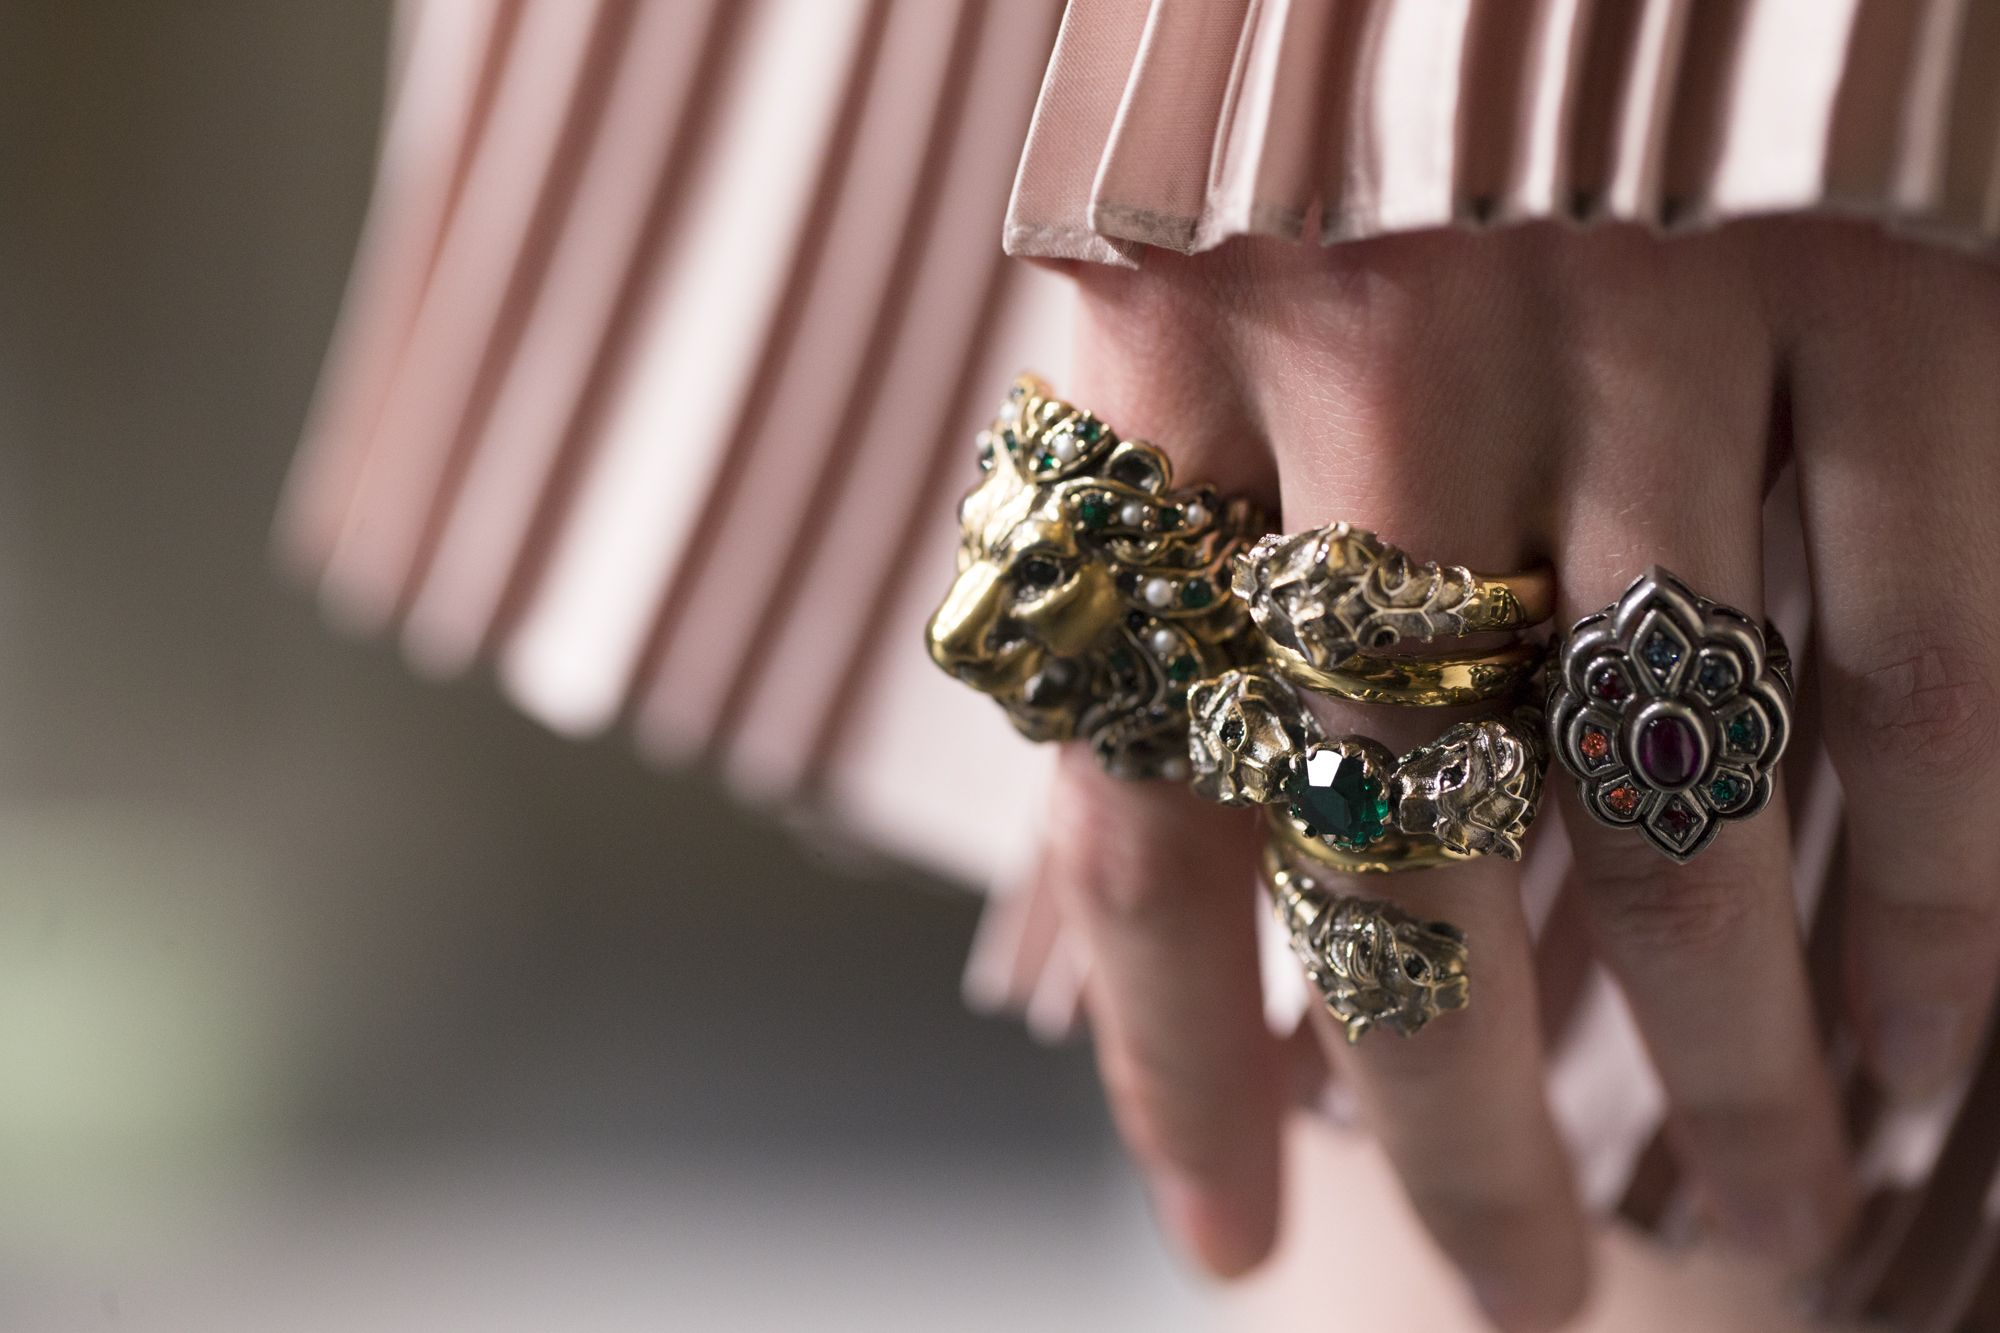 92946a68f Gucci's New Ring Collection: Fistfuls of rings featuring lion and tiger  head designs in golds and silvers adorned with colorful crystals.